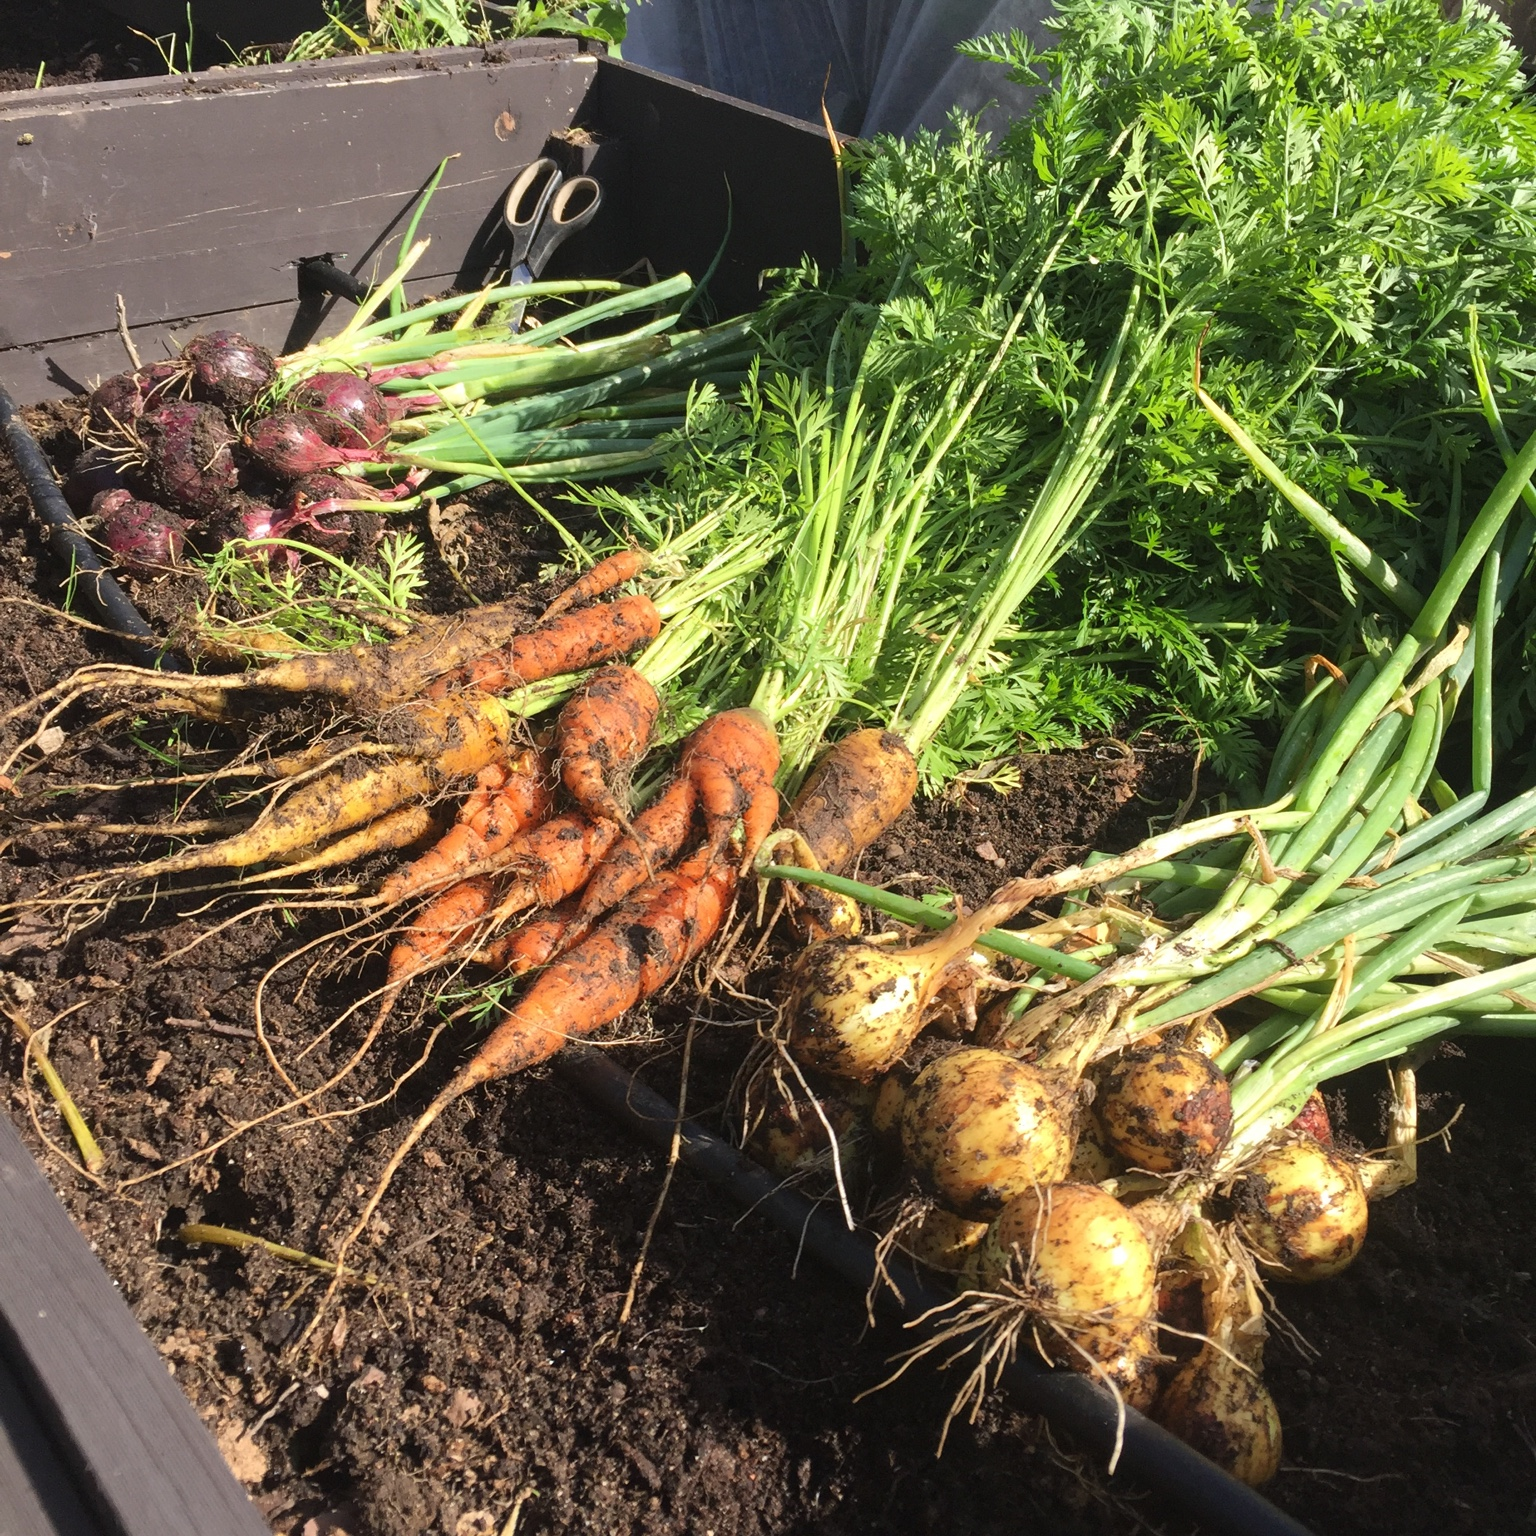 Raised Bed Plan - Carrots, Radish, Yellow Onions, Winter Carrots, and Mache Salad